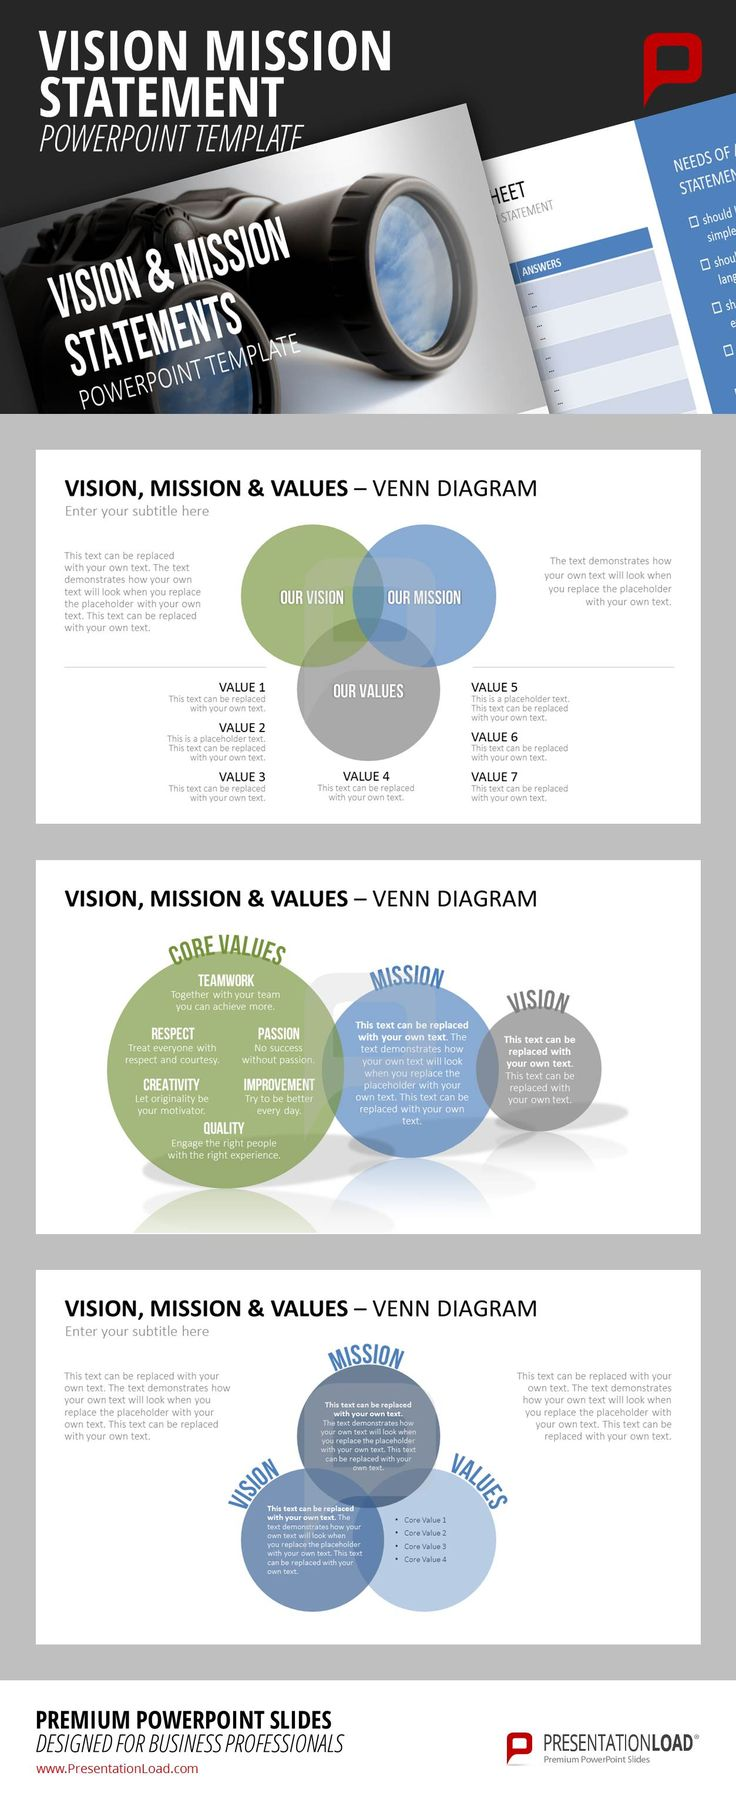 25 best ideas about vision statement on pinterest for Vision statement template free